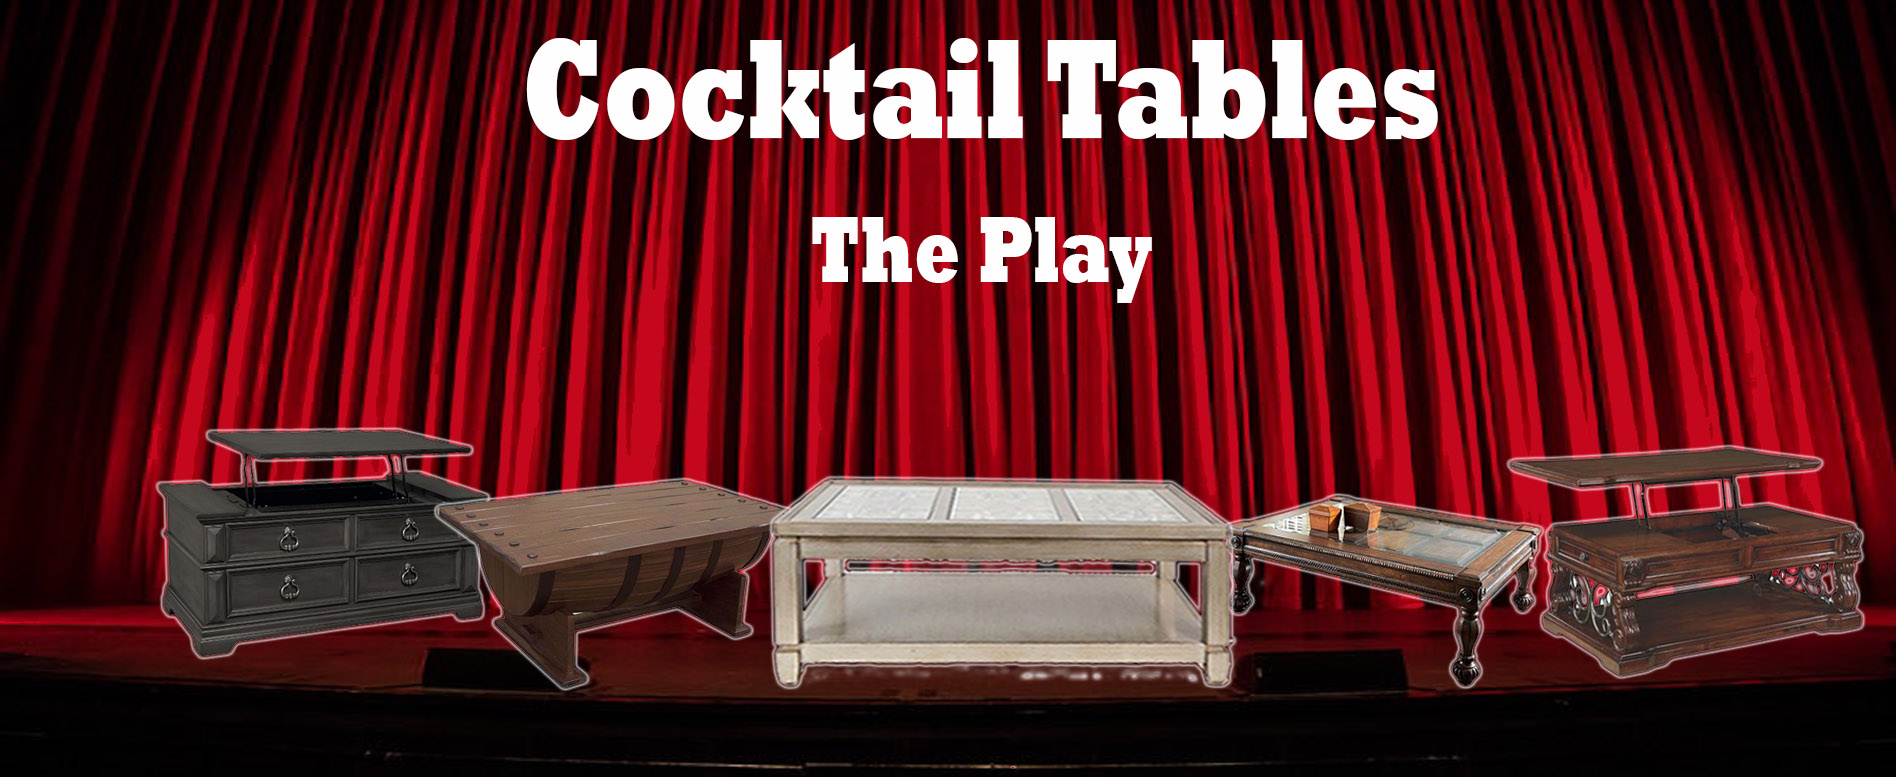 Have You Heard About Cocktail Tables?